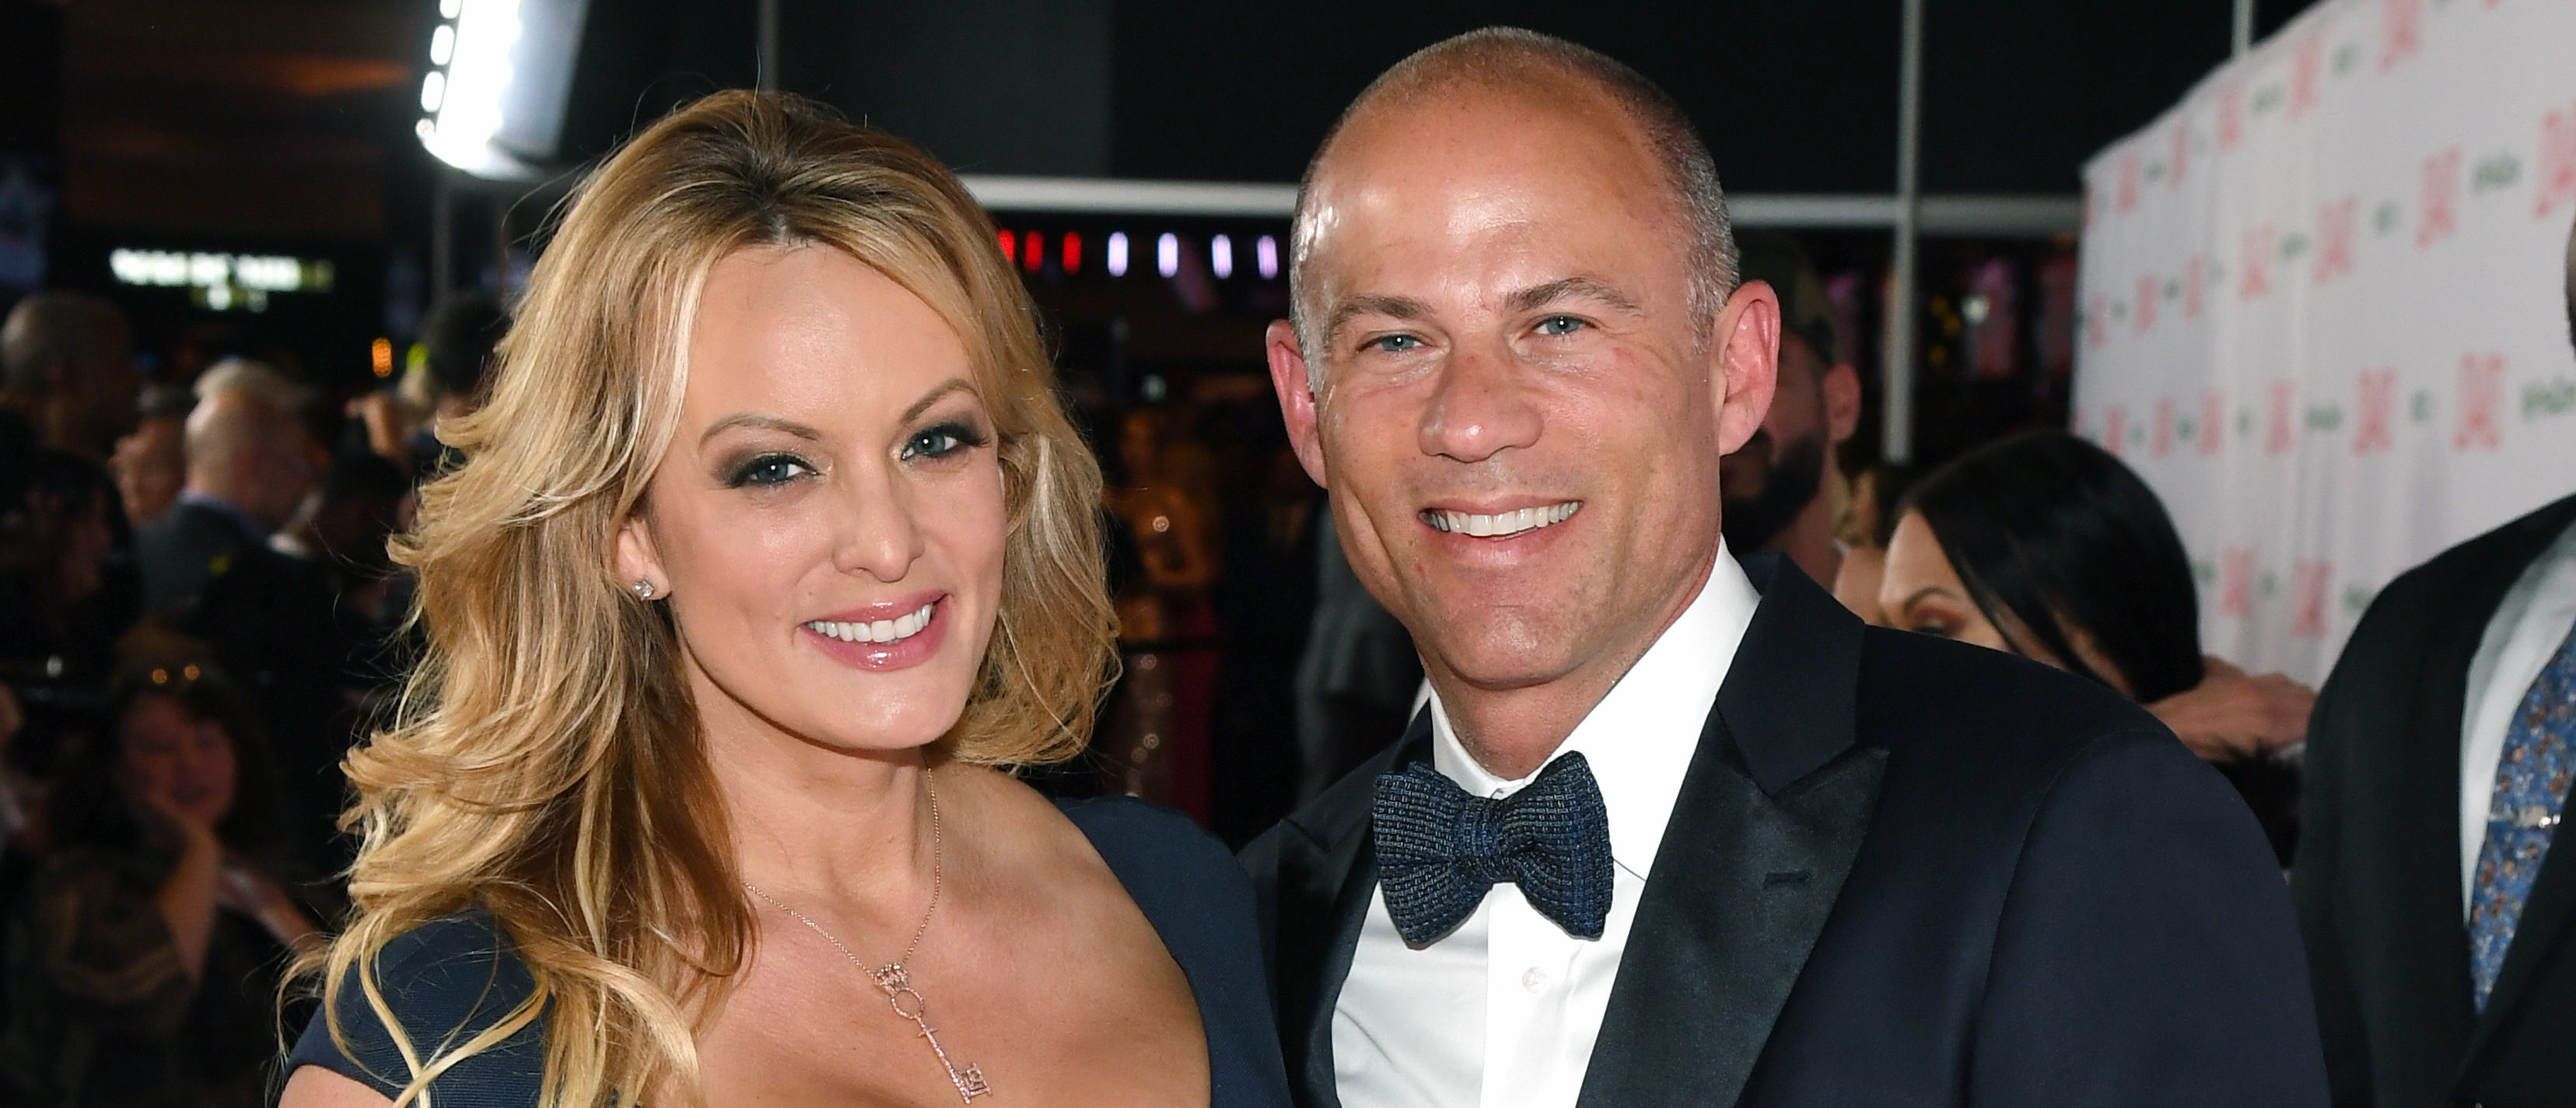 LAS VEGAS, NEVADA - JANUARY 26: Adult film actress/director Stormy Daniels (L) and attorney Michael Avenatti attend the 2019 Adult Video News Awards at The Joint inside the Hard Rock Hotel & Casino on January 26, 2019 in Las Vegas, Nevada. (Photo by Ethan Miller/Getty Images)